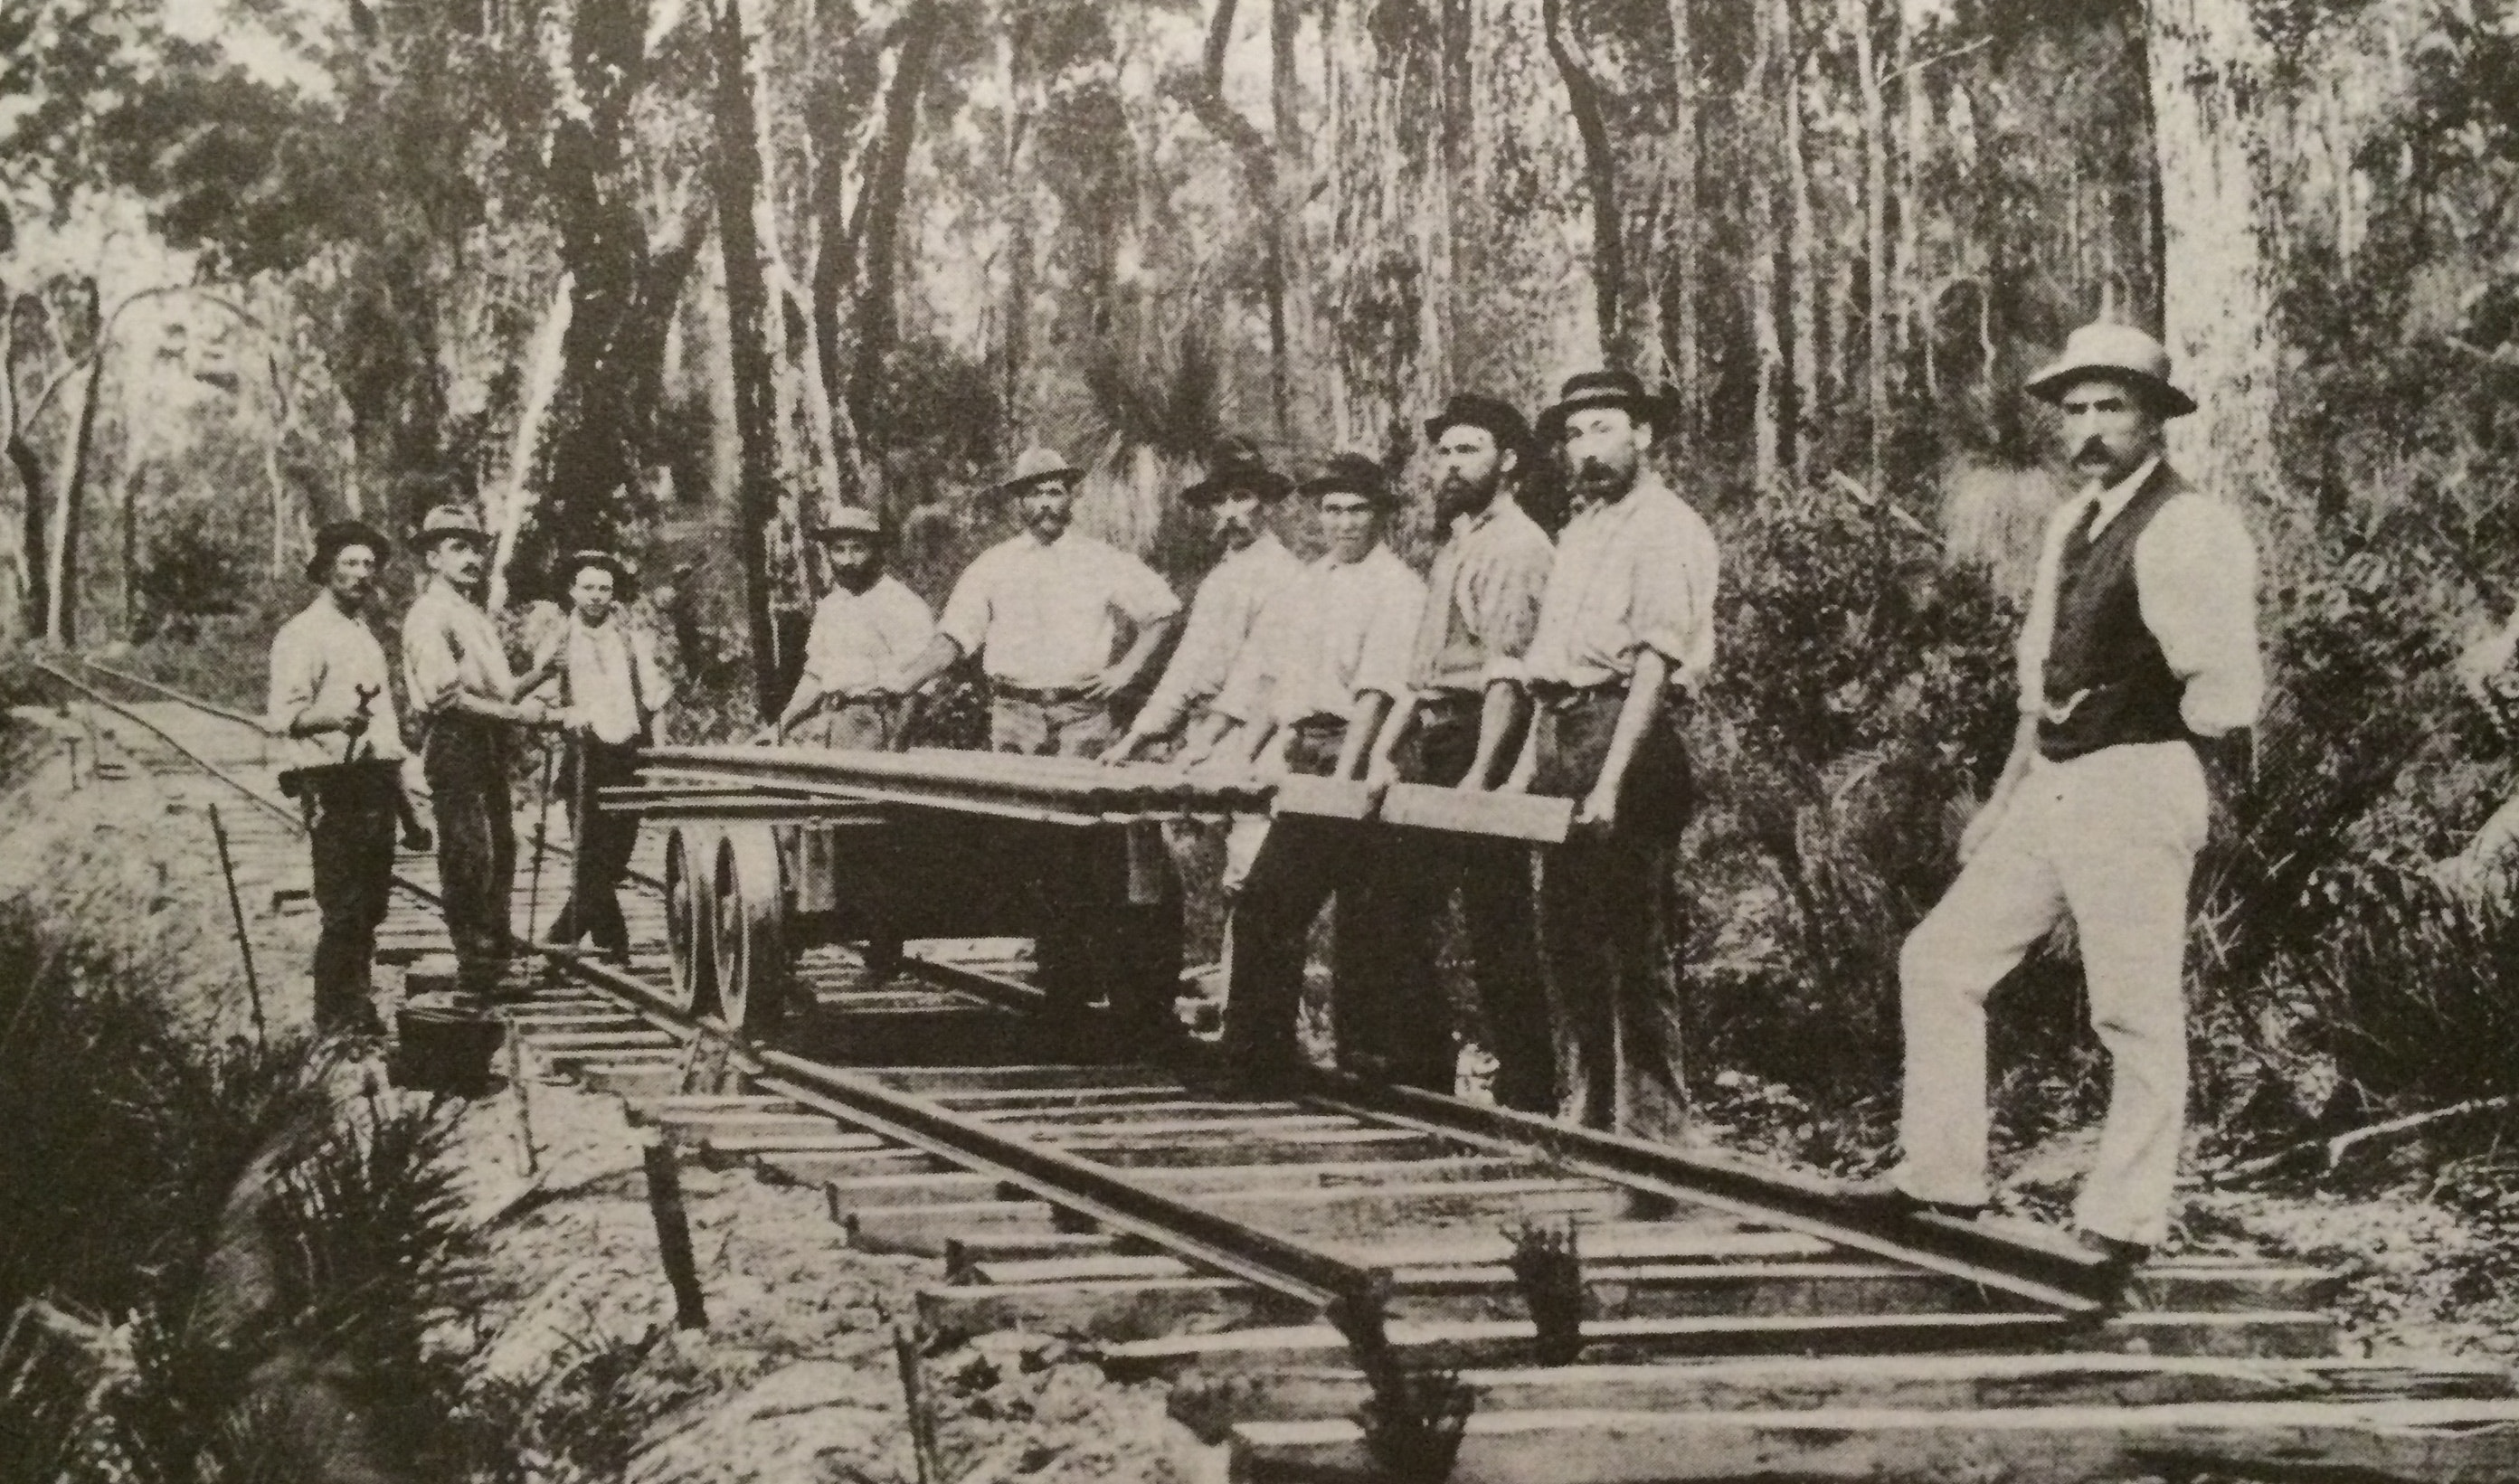 Laying line in Karridale in early 1900's